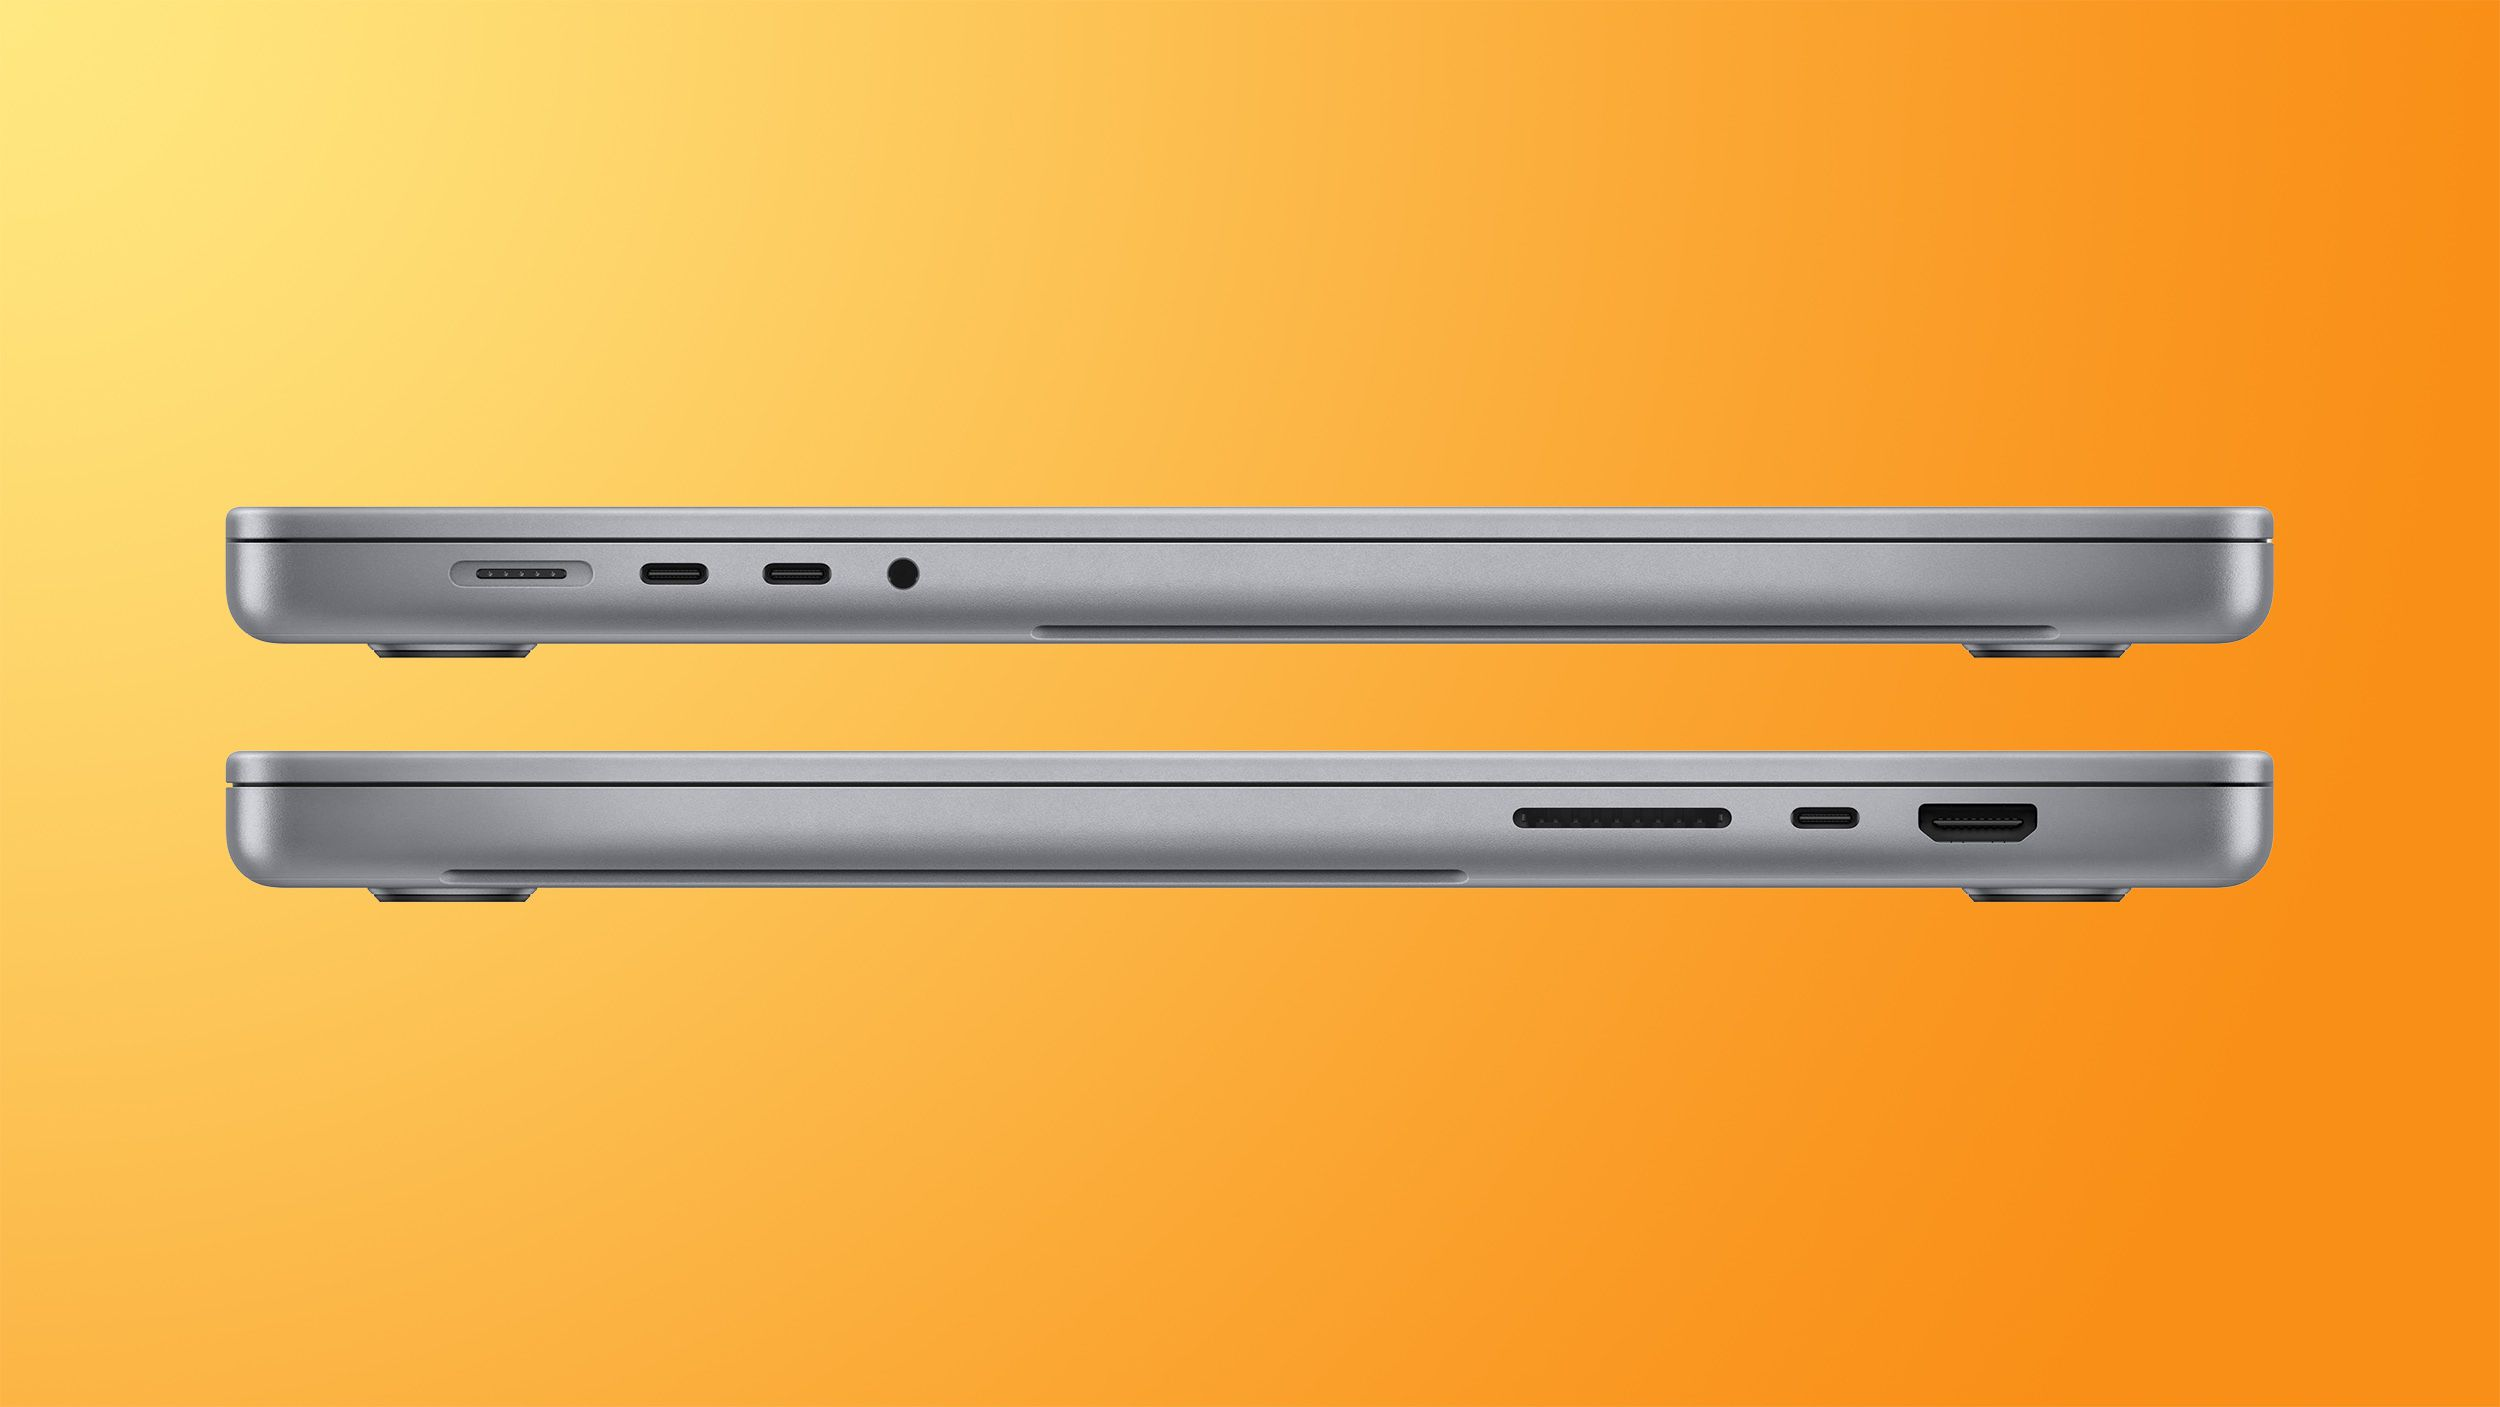 New MacBook Pro Models Include HDMI 2.0 Port Instead of HDMI 2.1